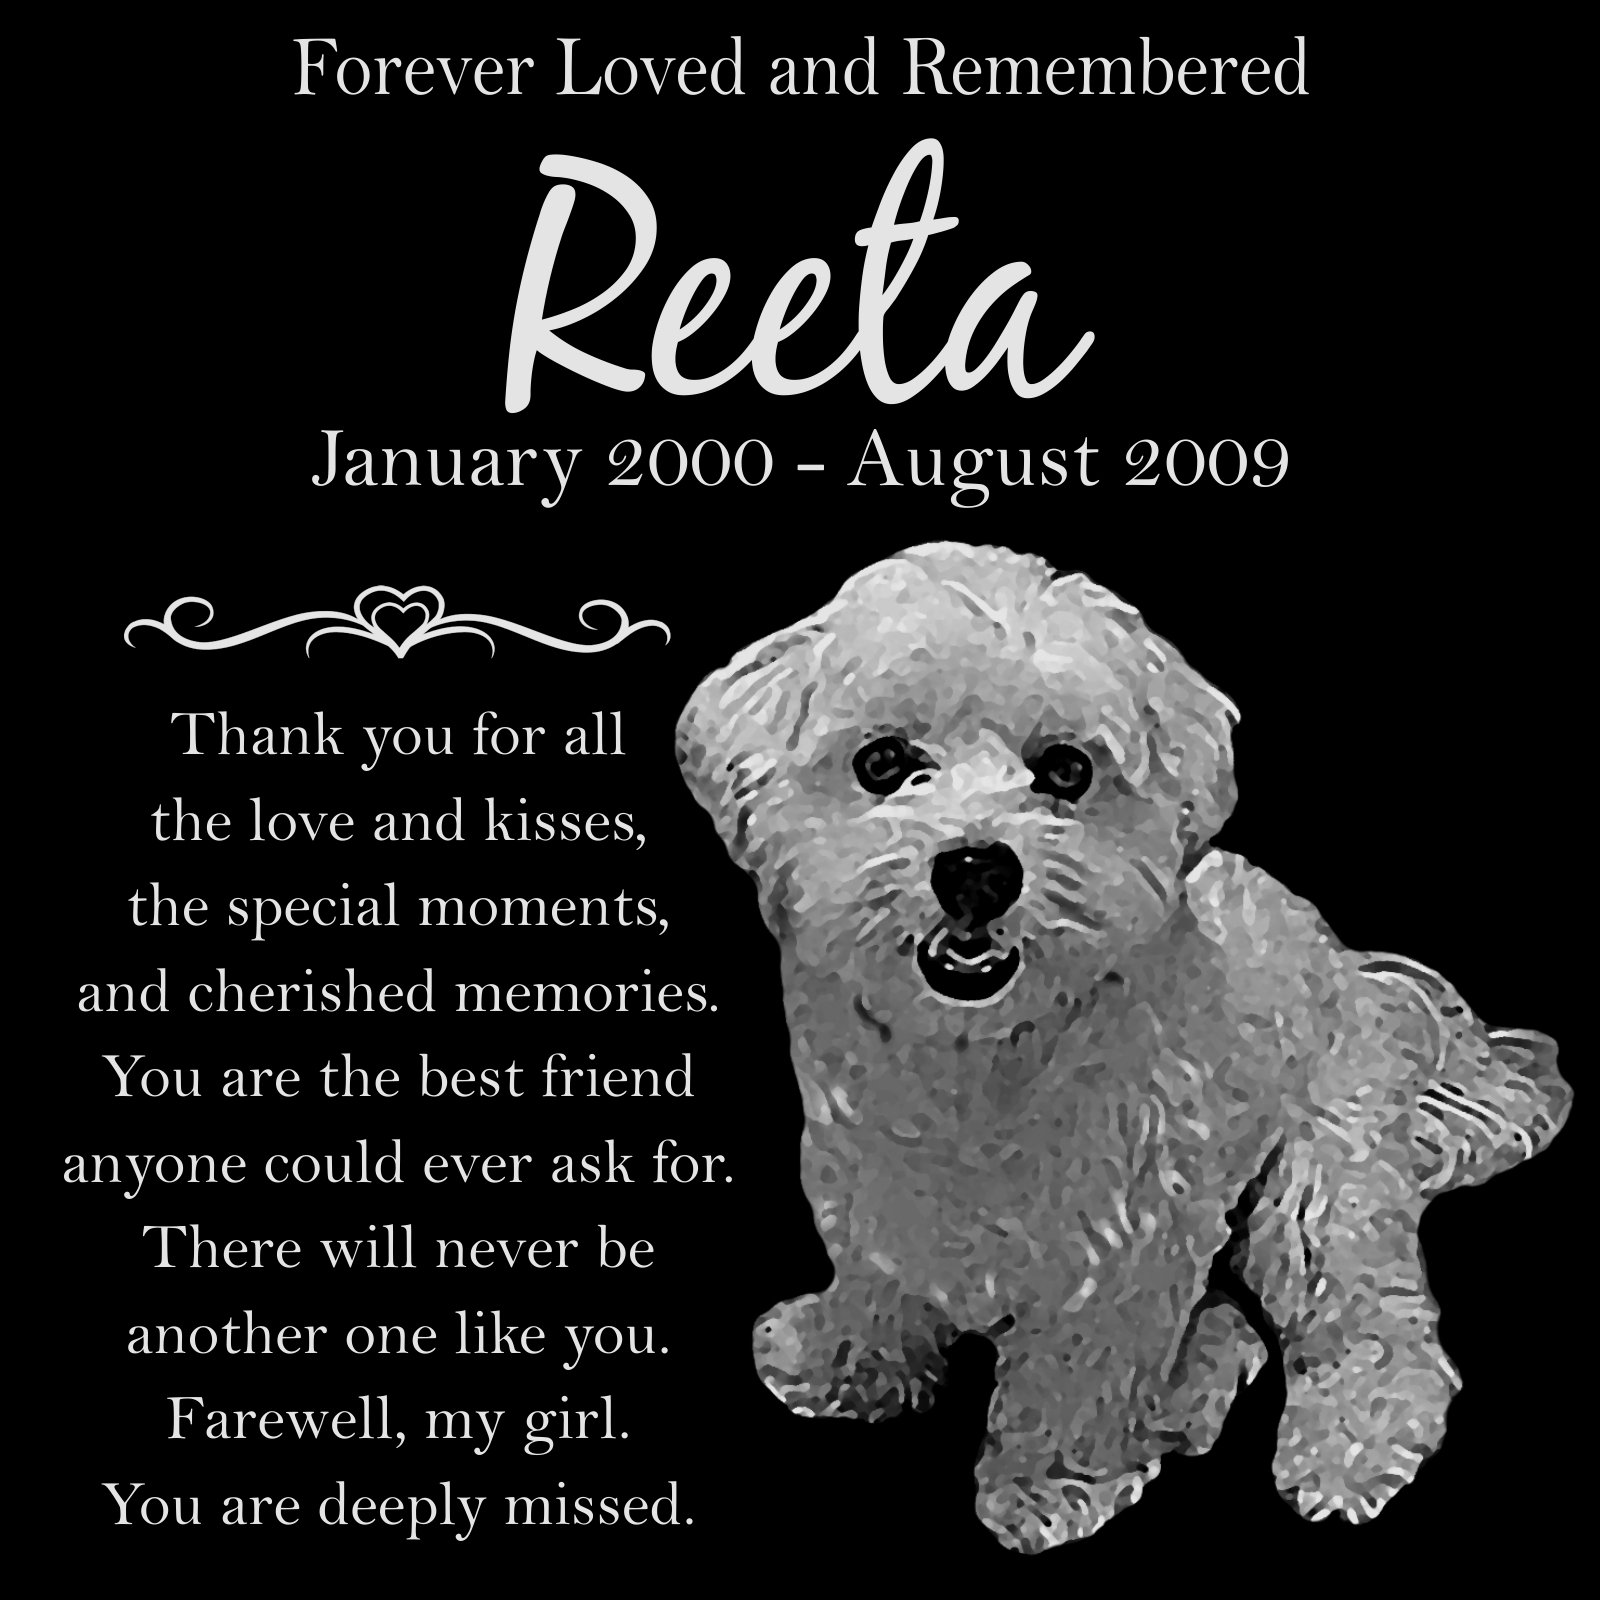 Personalized Maltese Dog Pet Memorial 12''x12'' Engraved Black Granite Grave Marker Head Stone Plaque REE1